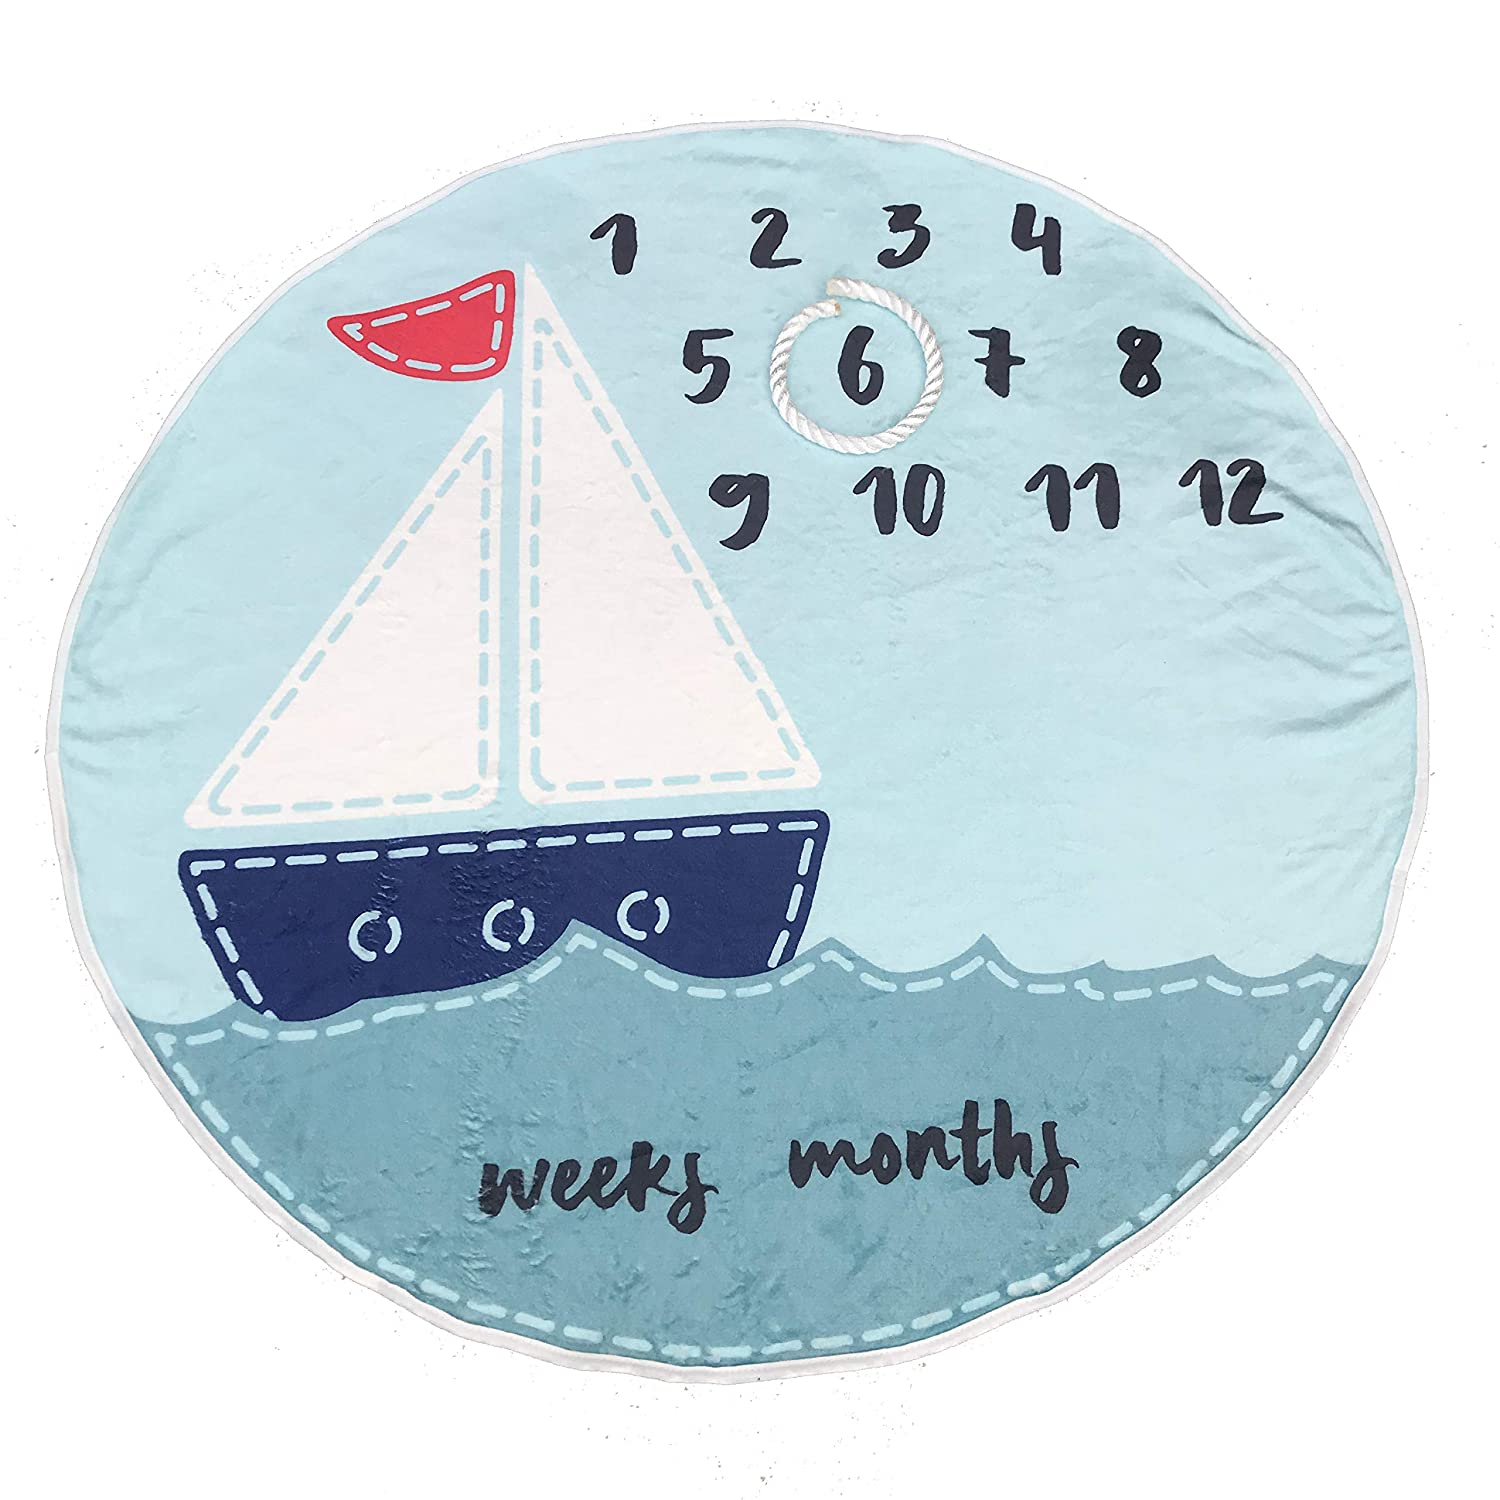 Premium Fleece Monthly Baby Milestone Blanket Round Blue Sailboat for Newborn to One Year 37 with Anchor Rope for Frame Kross Trends